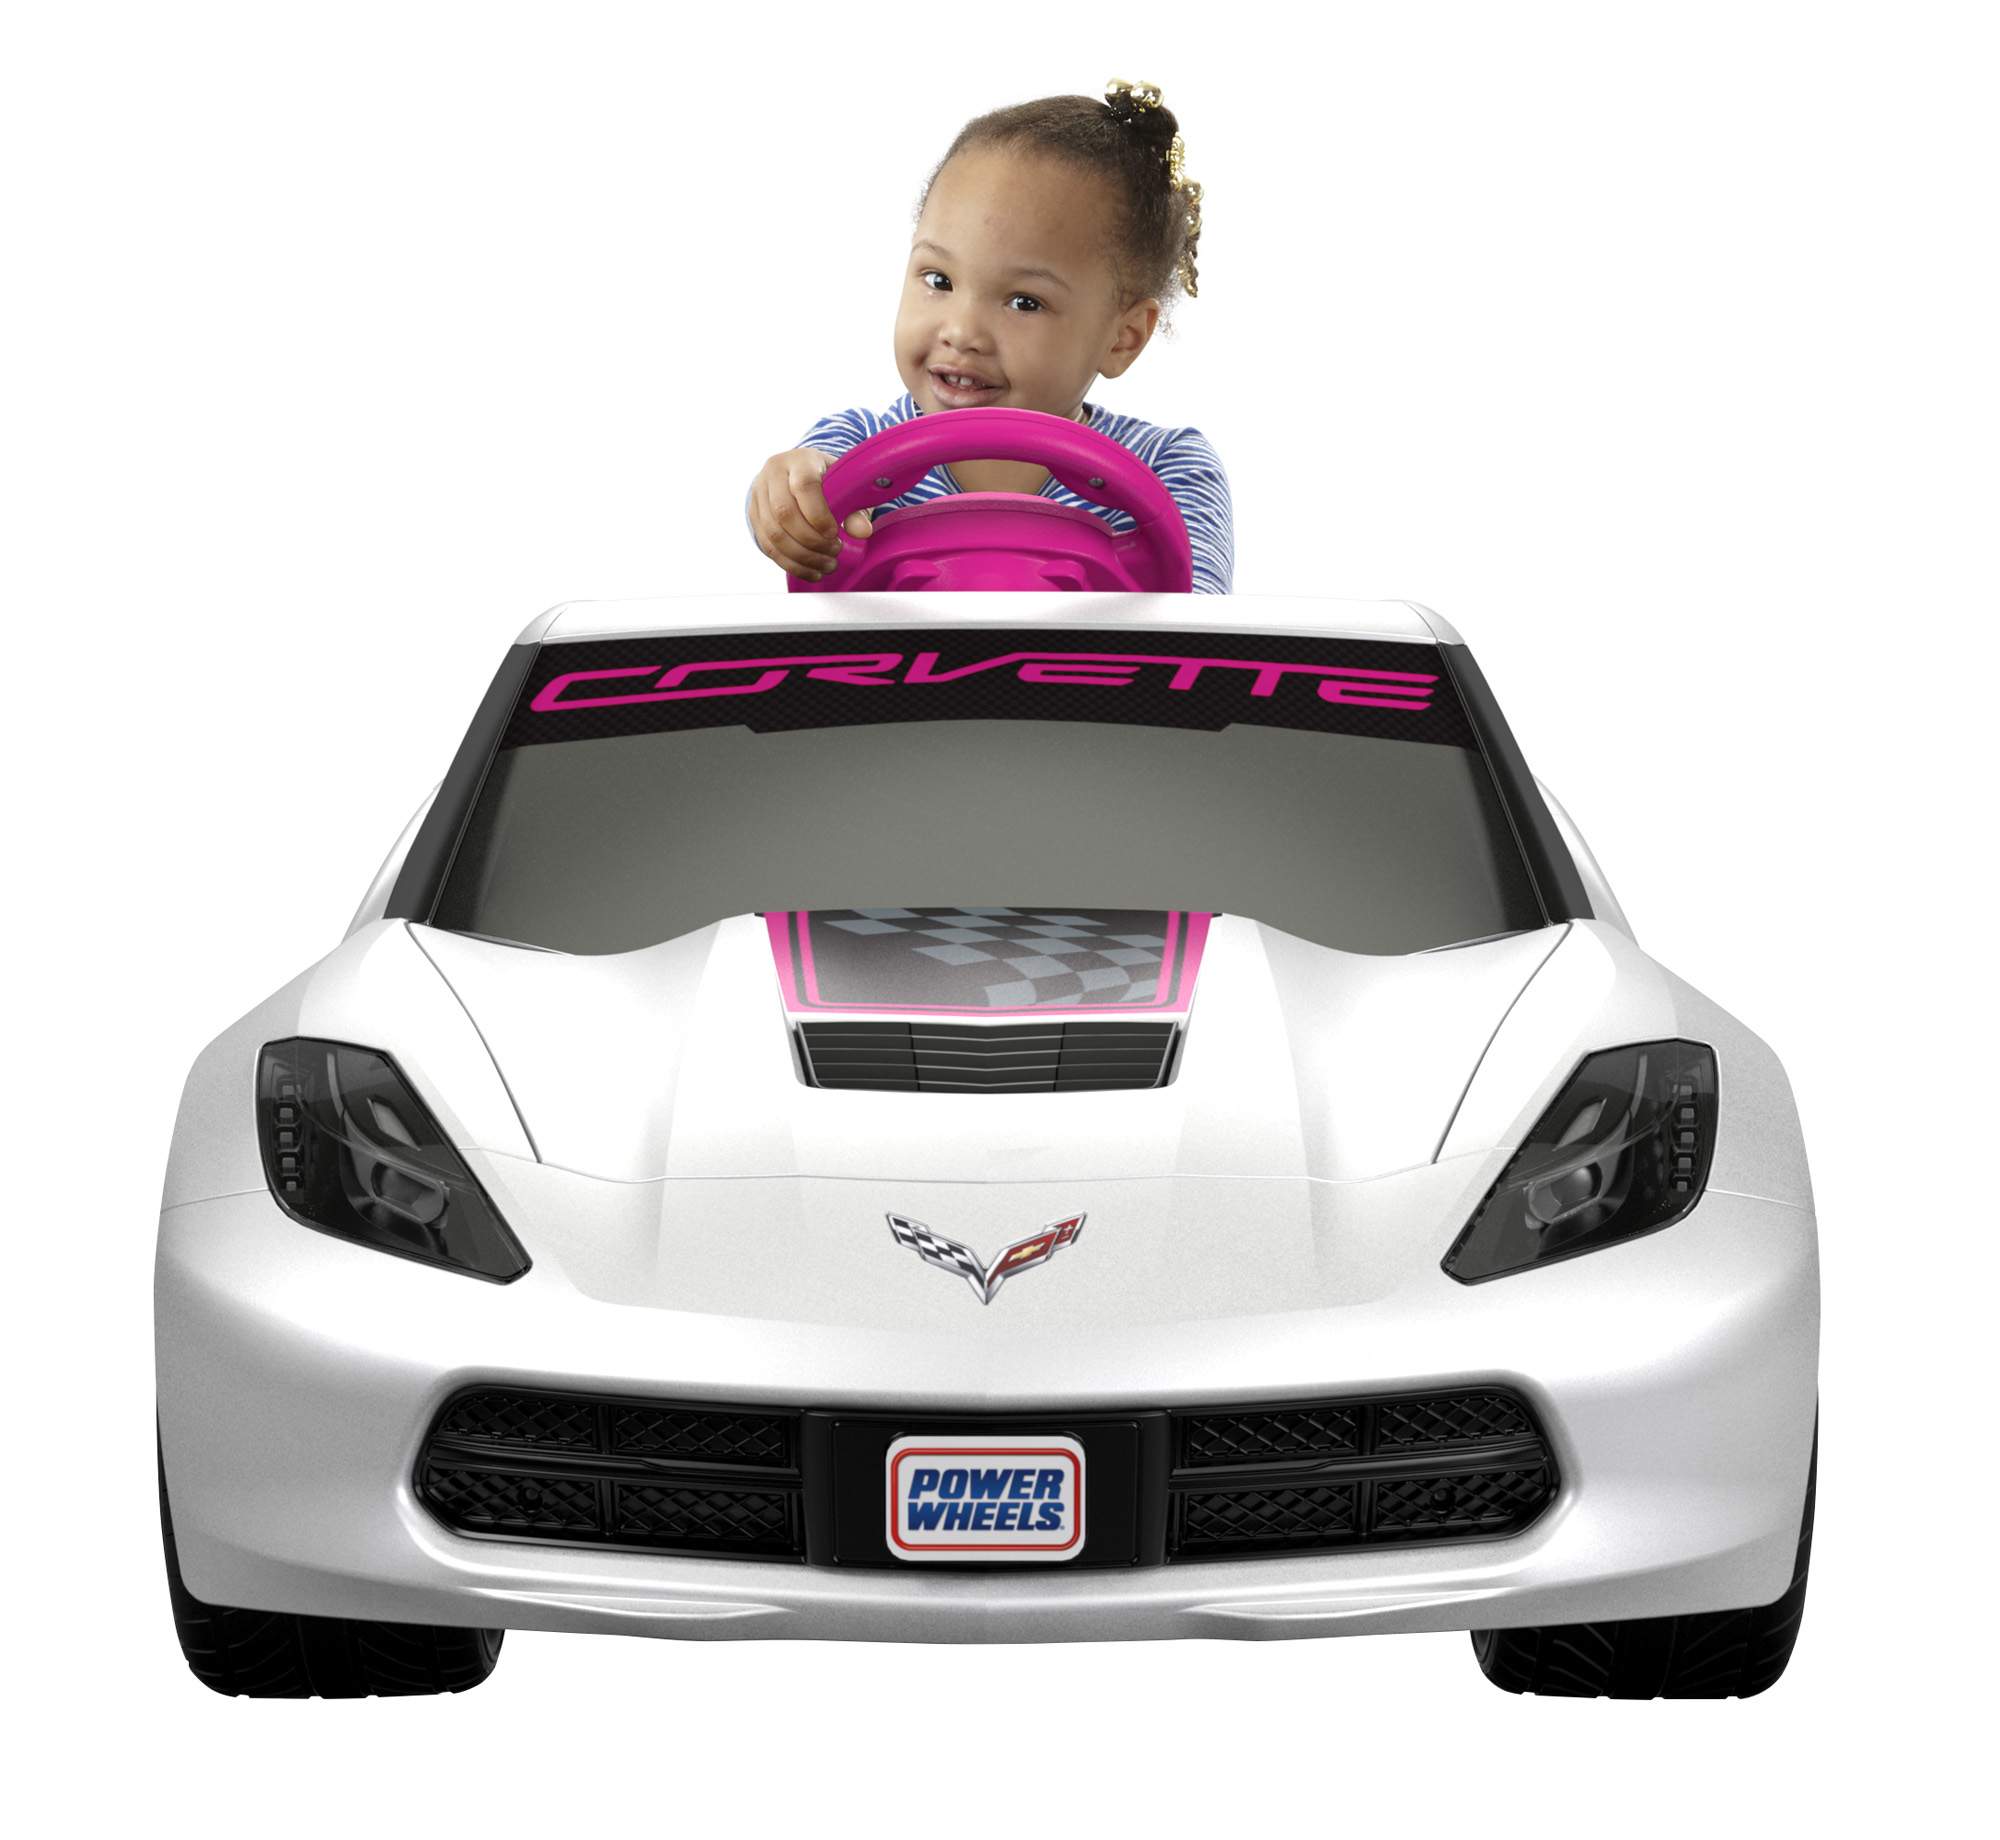 Fisher-Price Power Wheels Girls' Corvette 6V Battery-Powered Ride-On